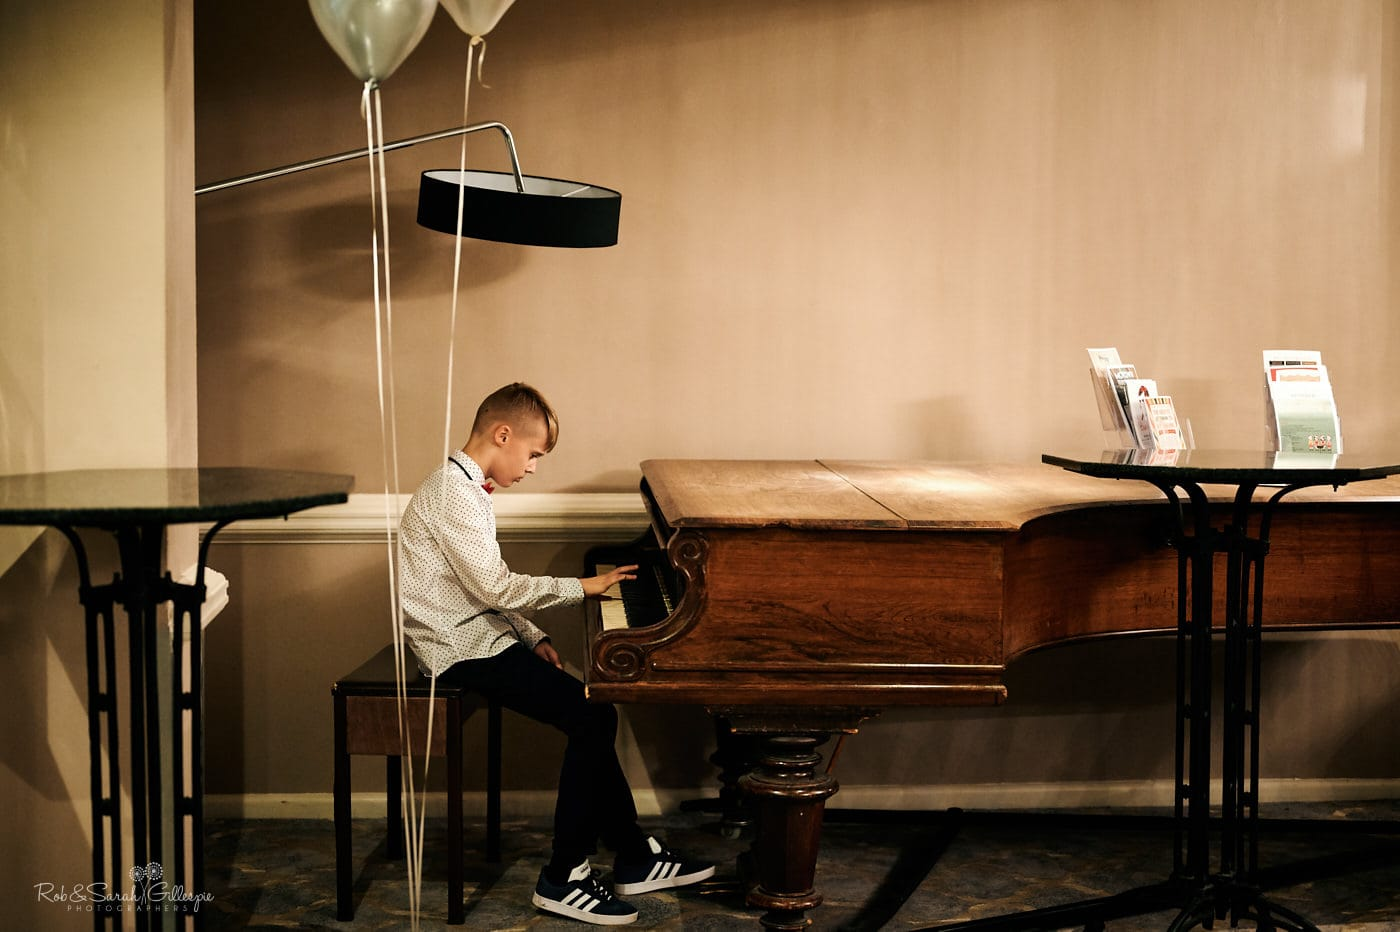 Young wedding guest plays piano at reception